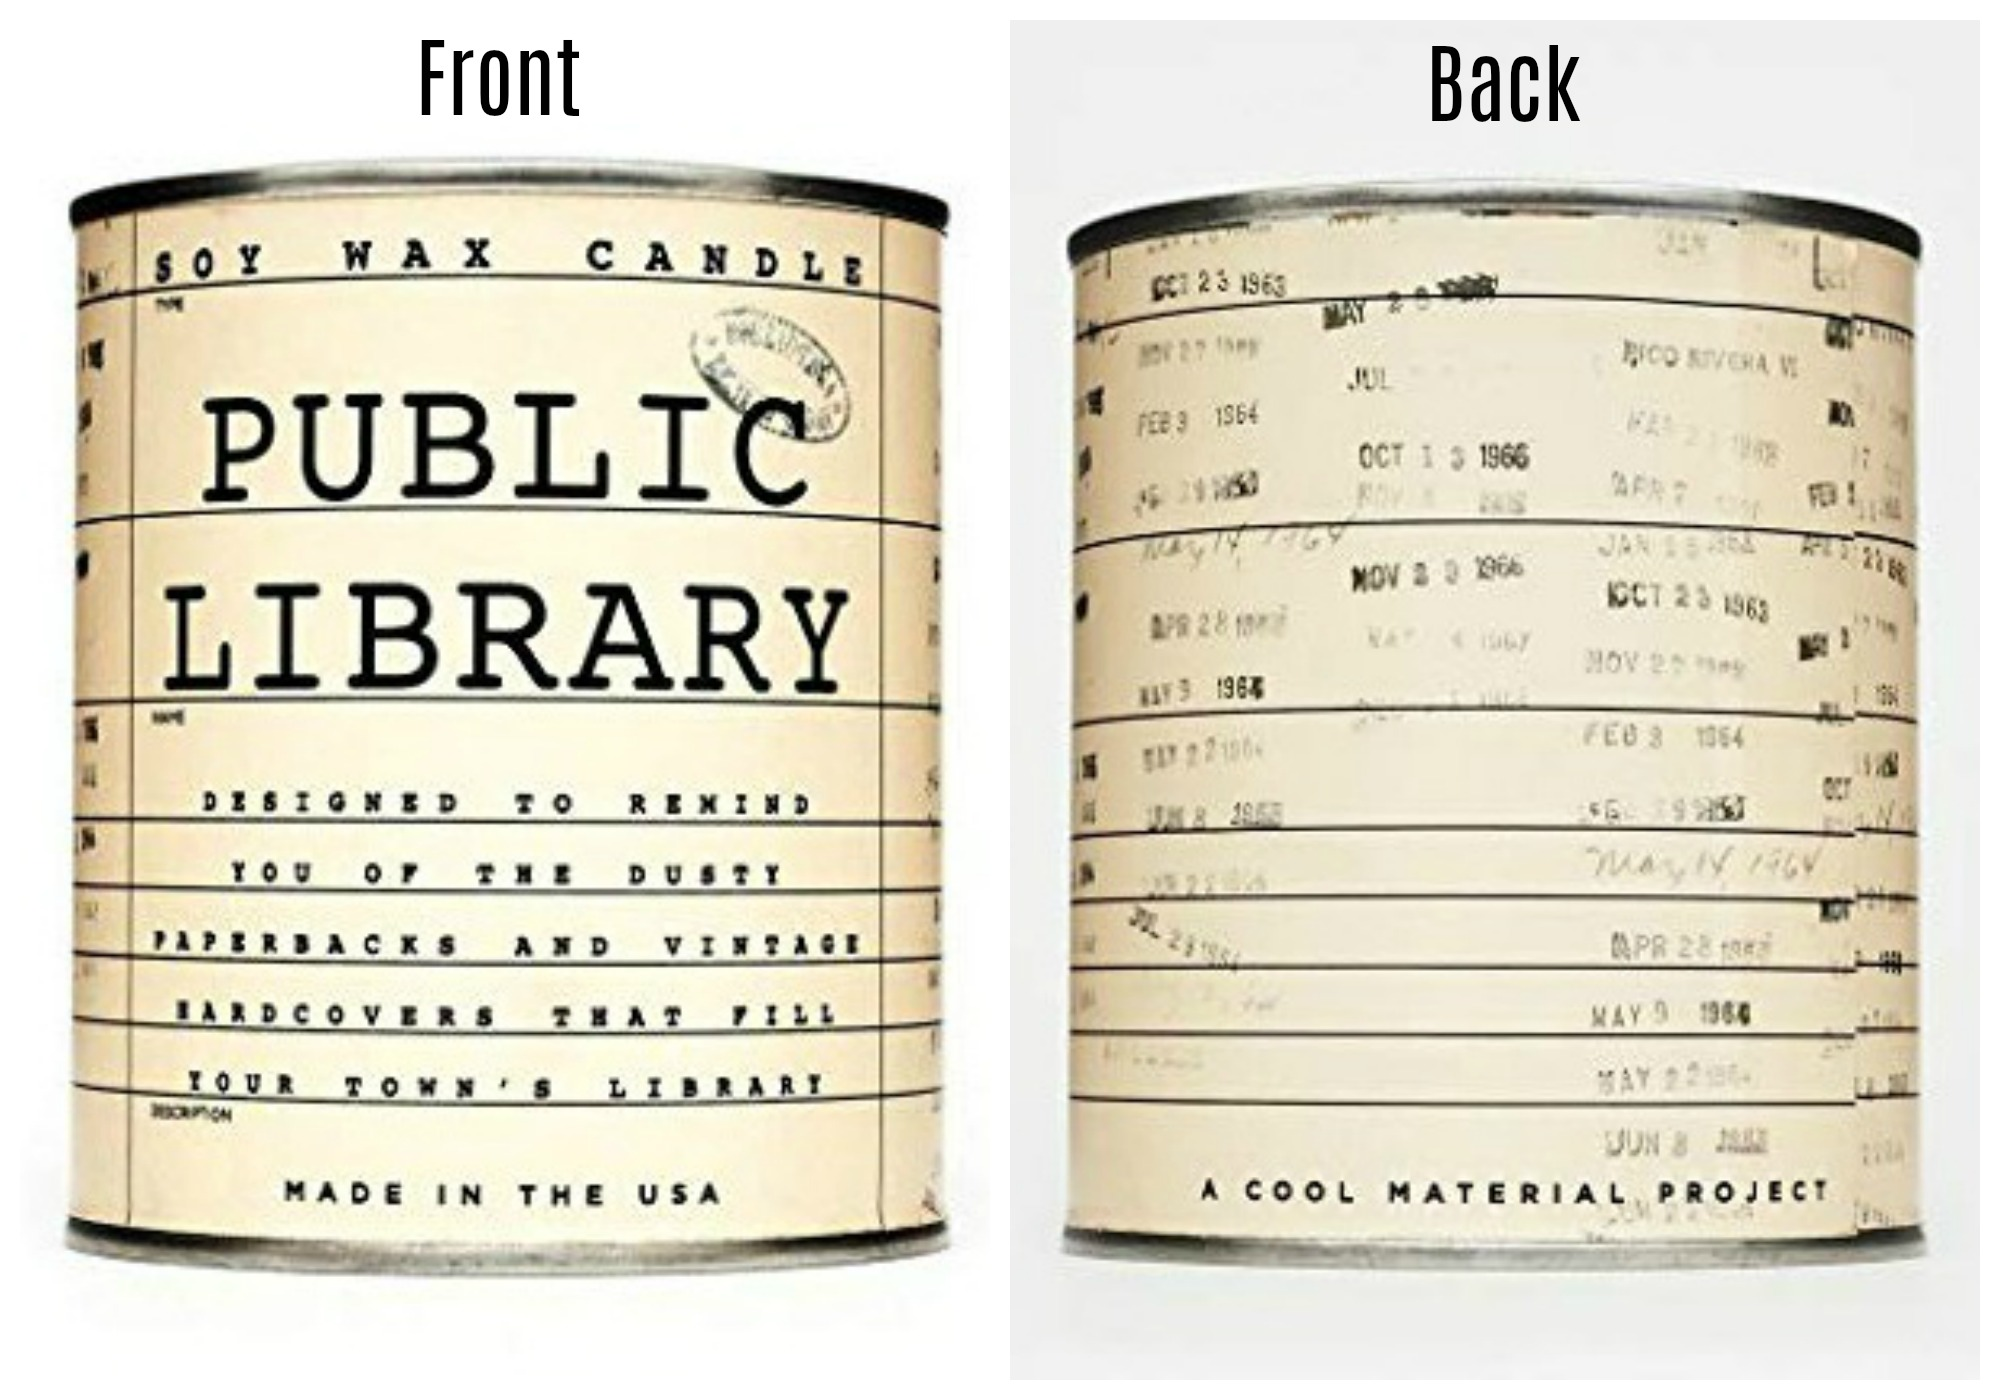 Public Library Candle